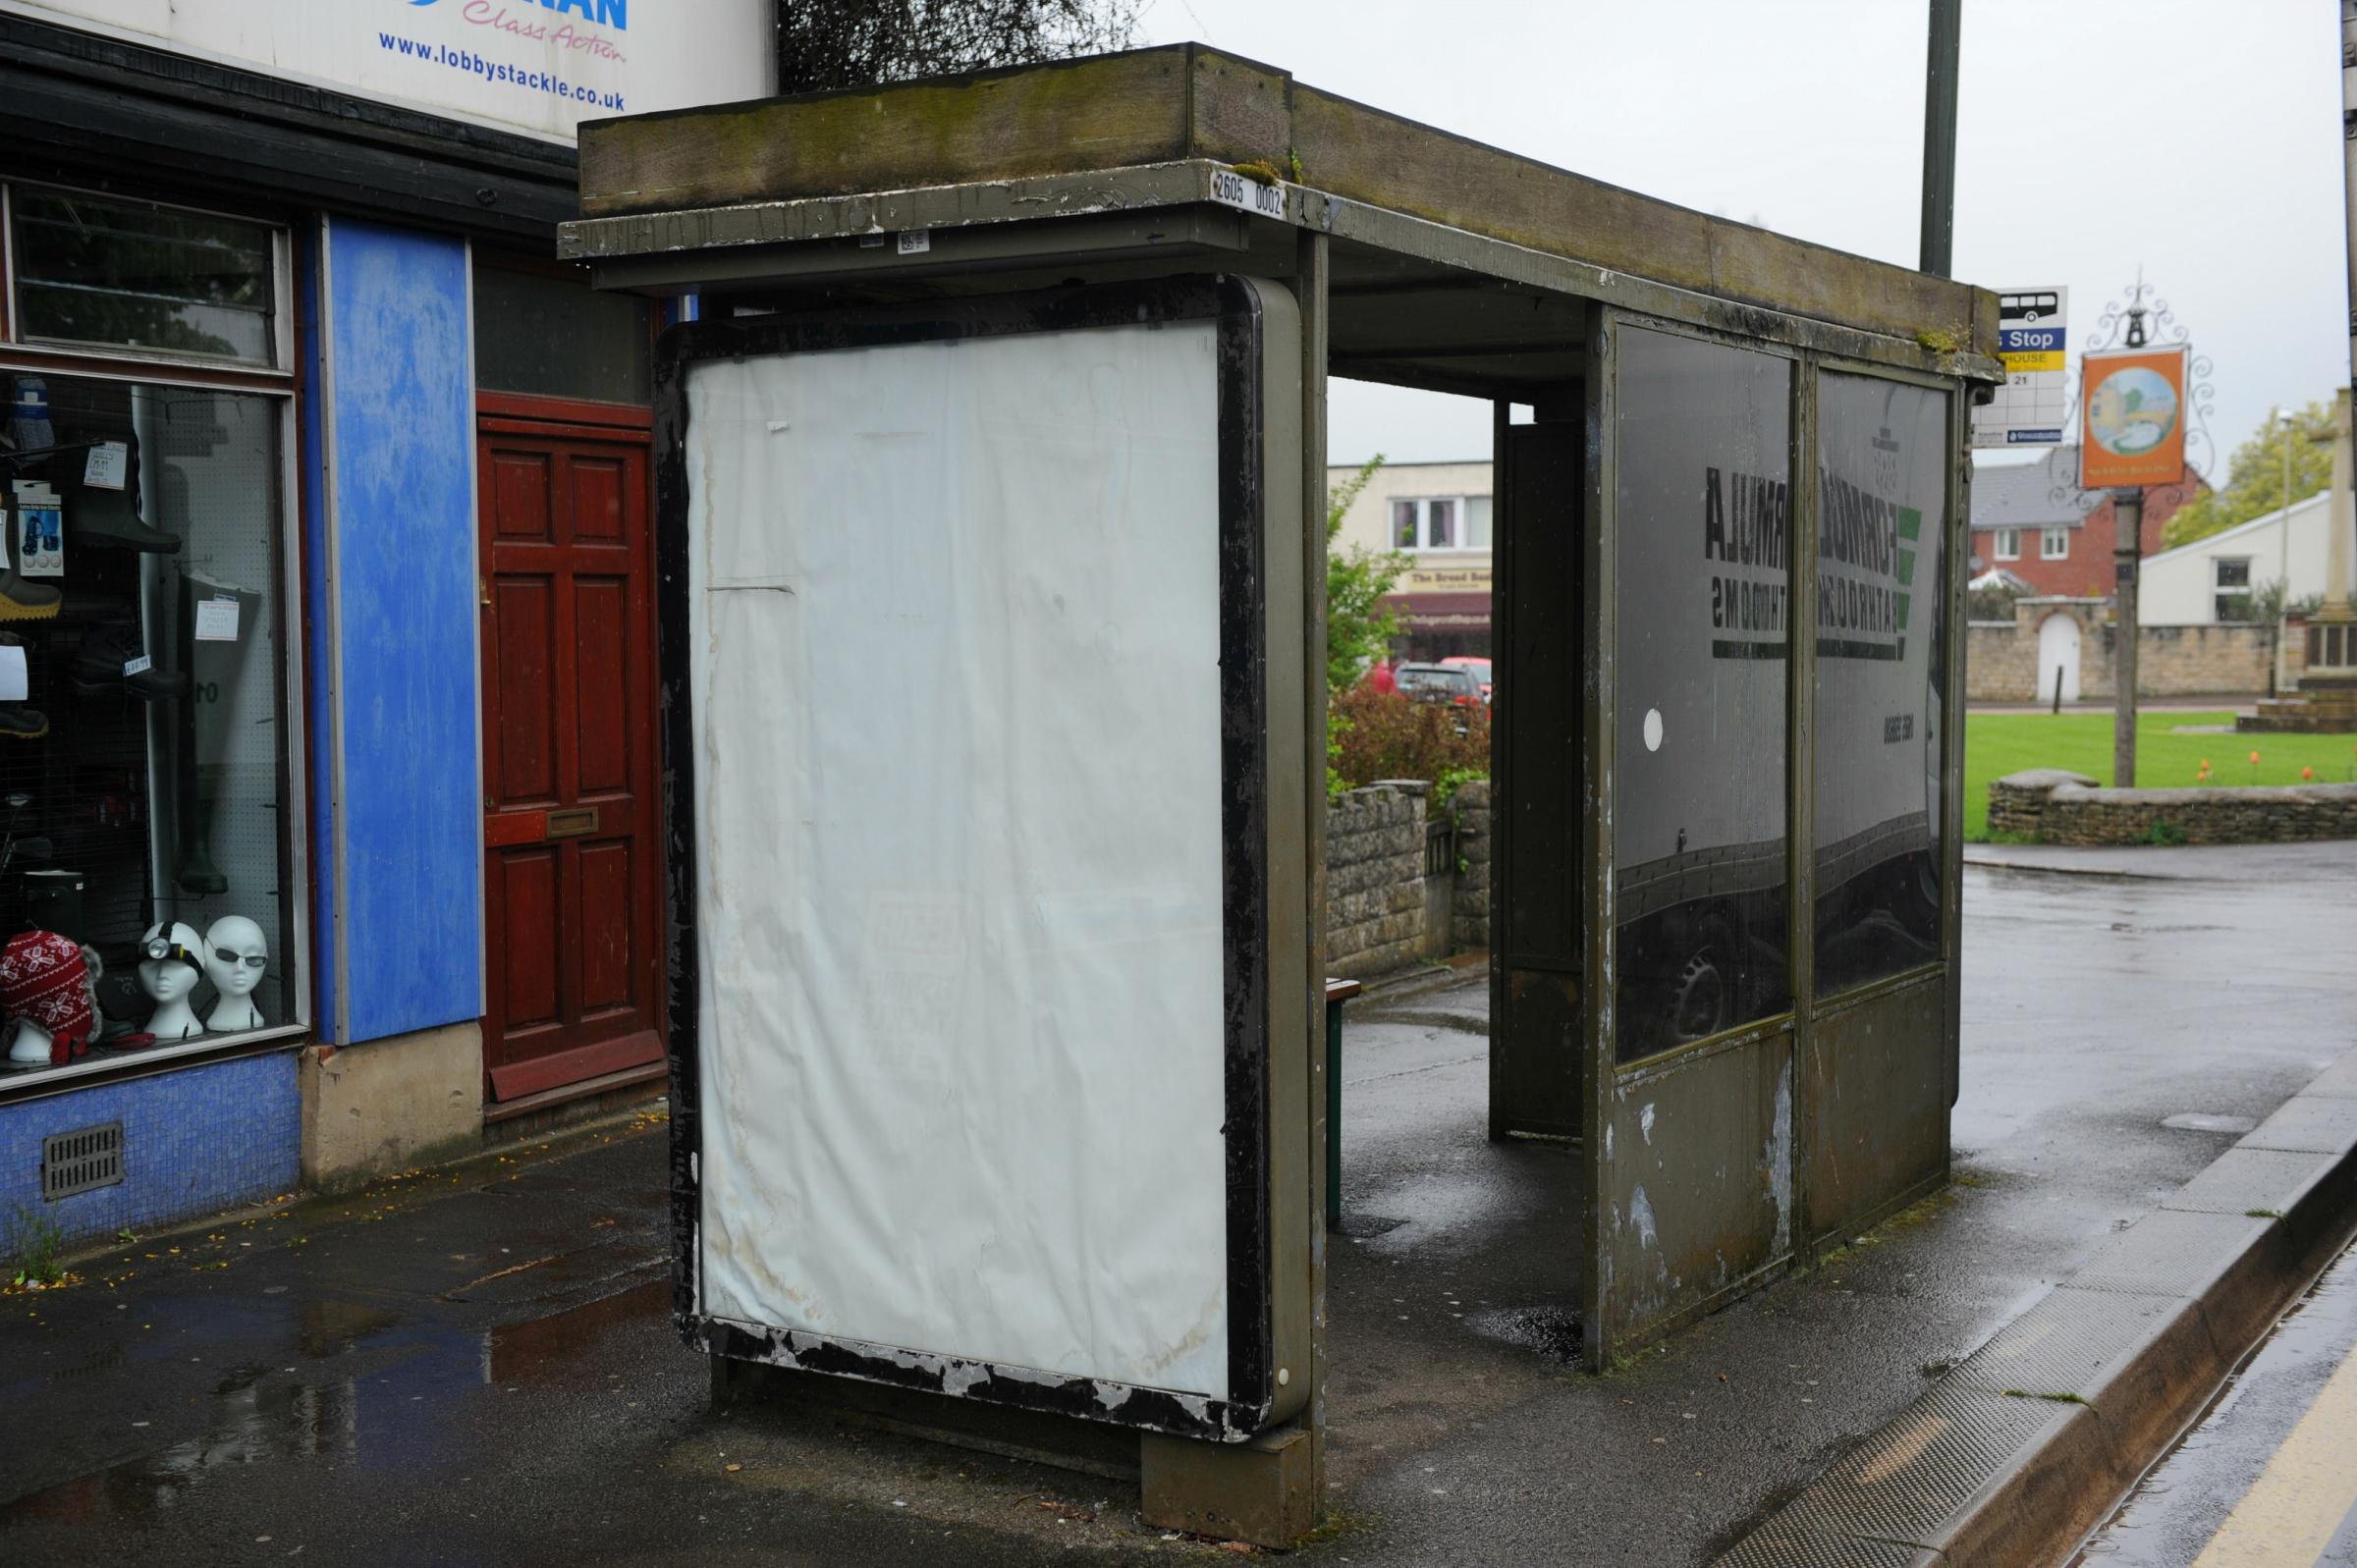 No replacement but a revamp for three bus shelters